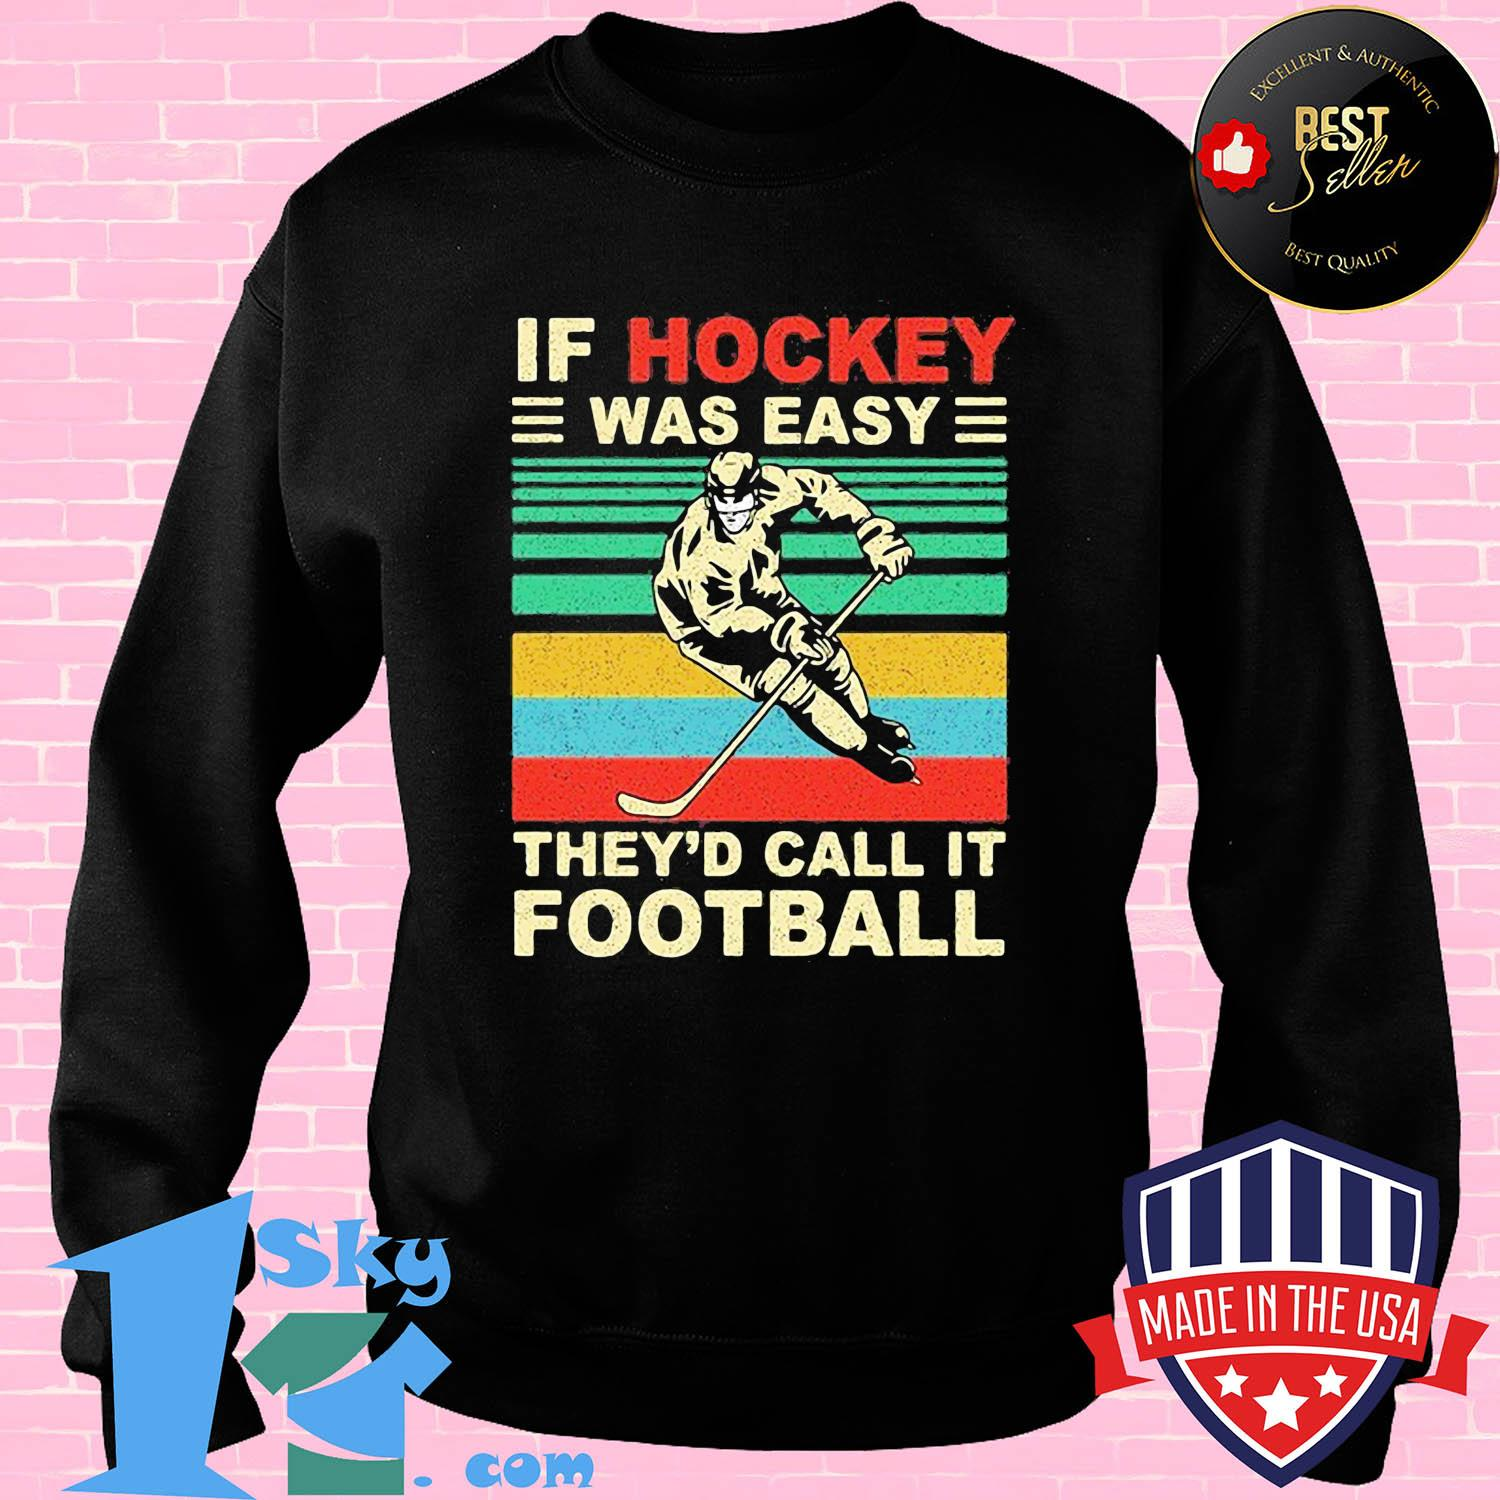 If hockey was easy they'd call it football vintage shirt